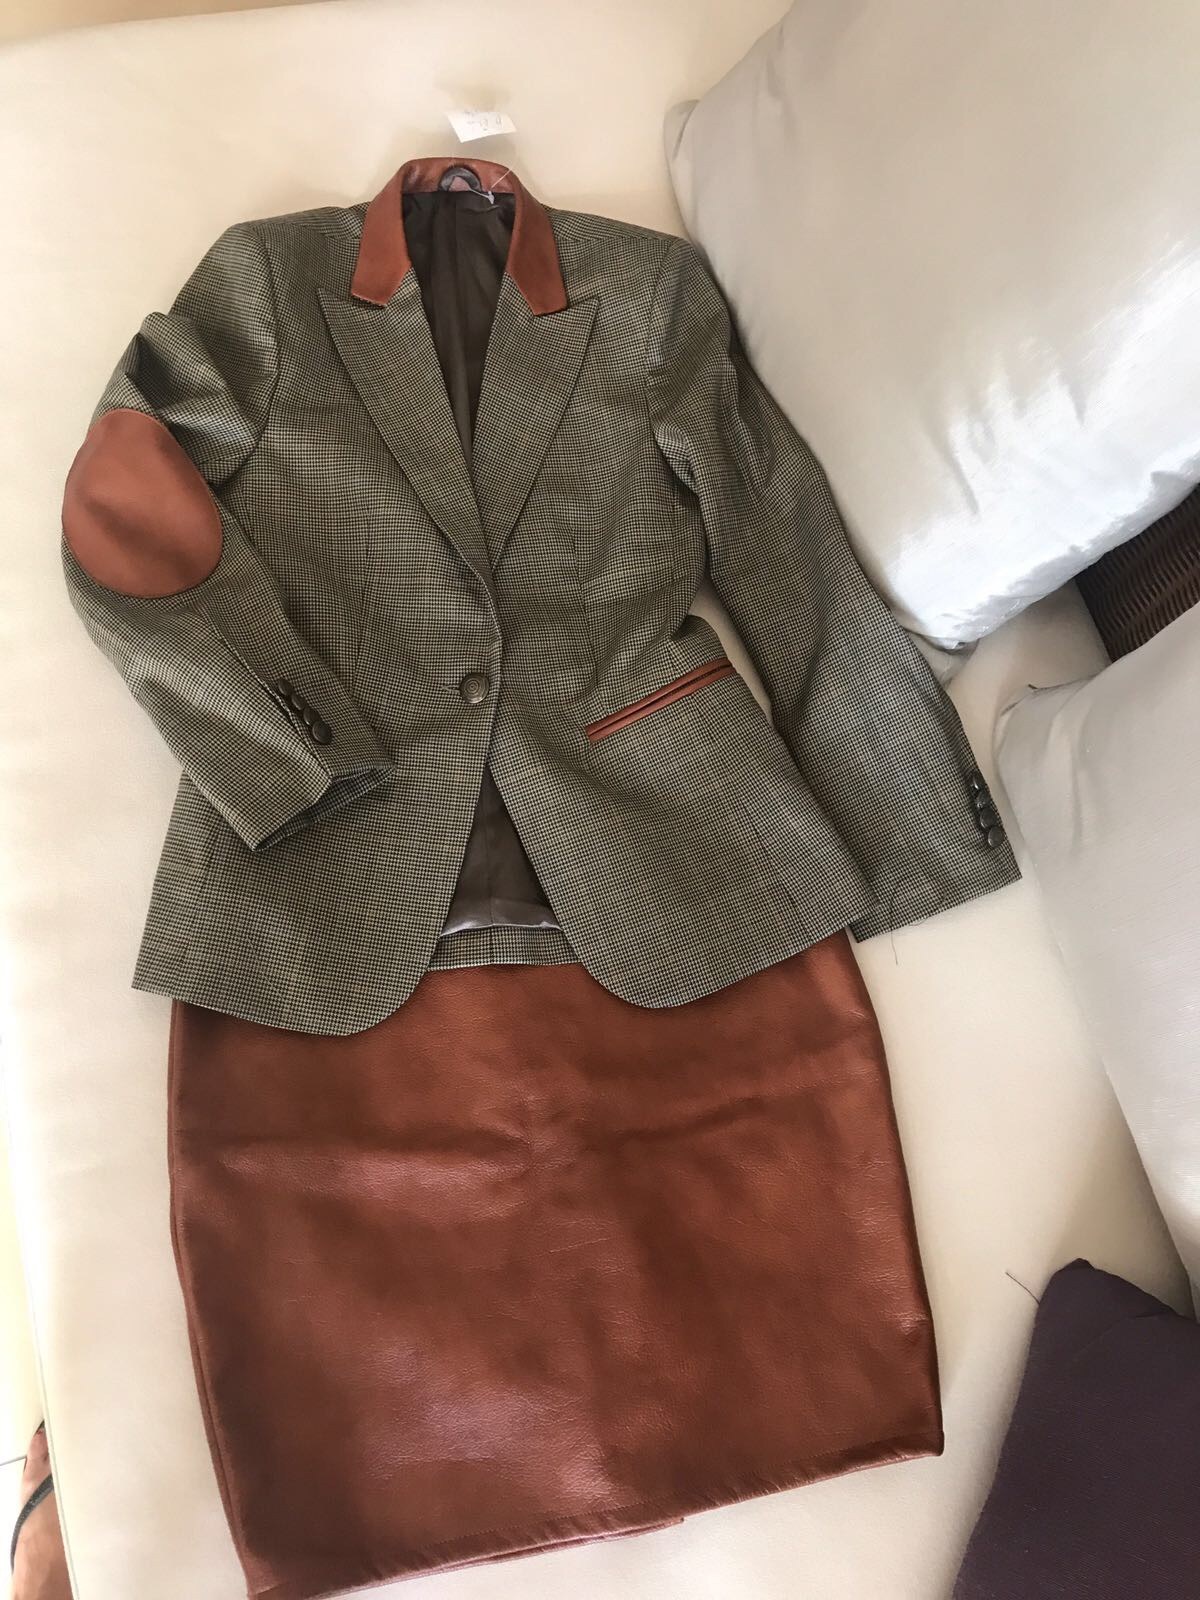 One of Leigh Anna's clothing purchases courtesy of Tuong Tailor